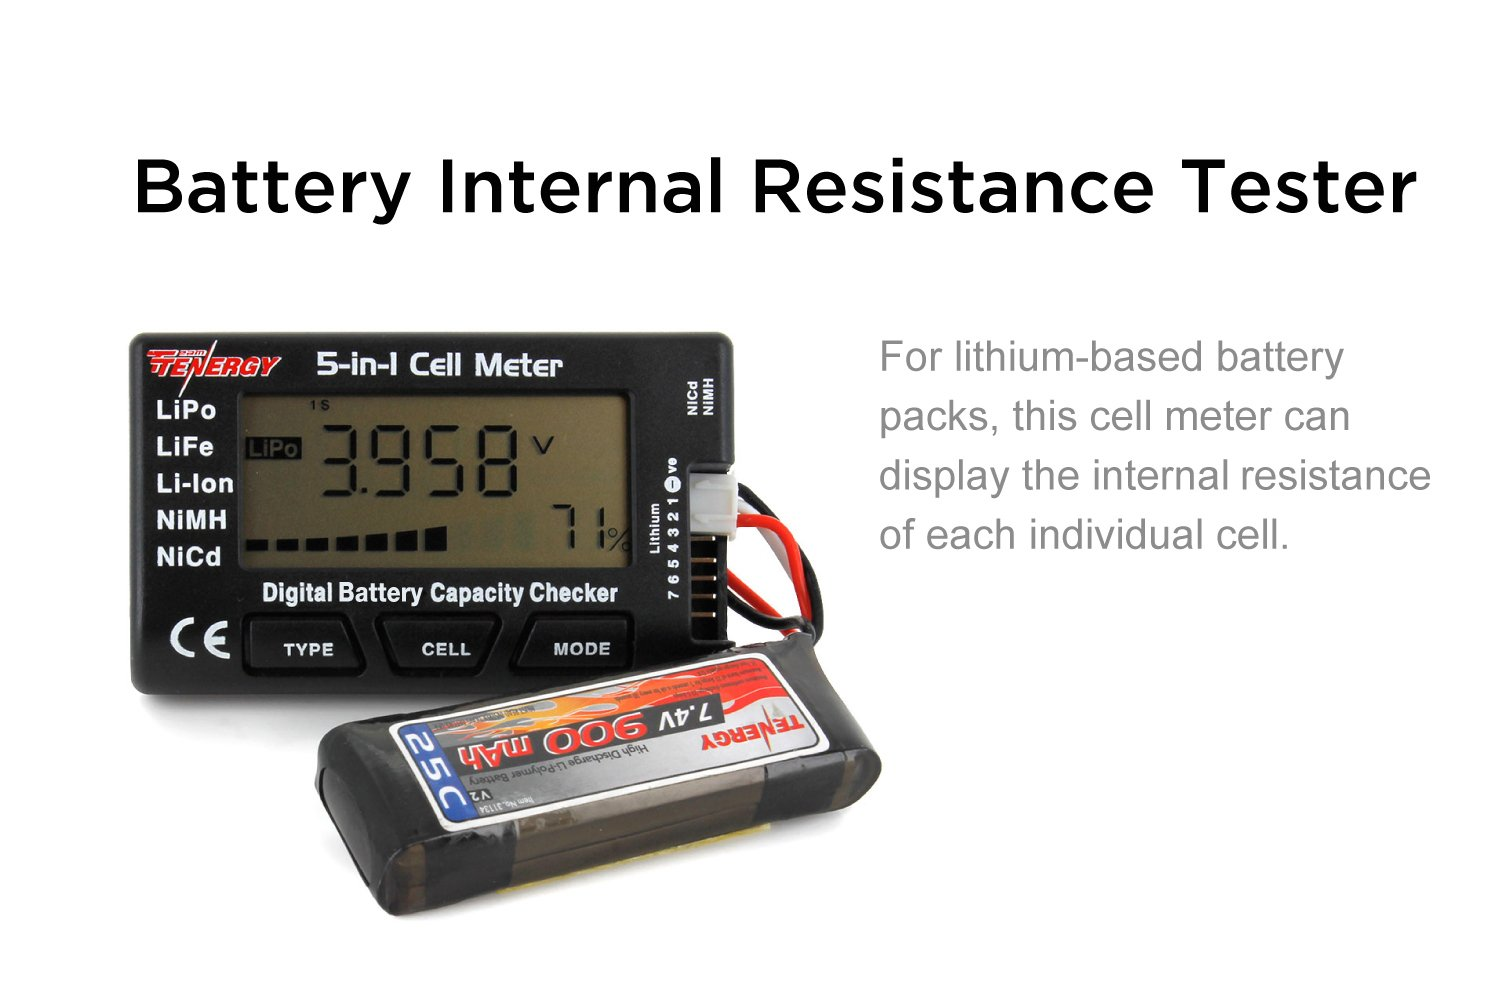 Tenergy 5 In 1 Battery Meter Intelligent Cell Chicago Charger Wiring Schematic Digital Checker Balancer For Lipo Lifepo4 Li Ion Nicd Nimh